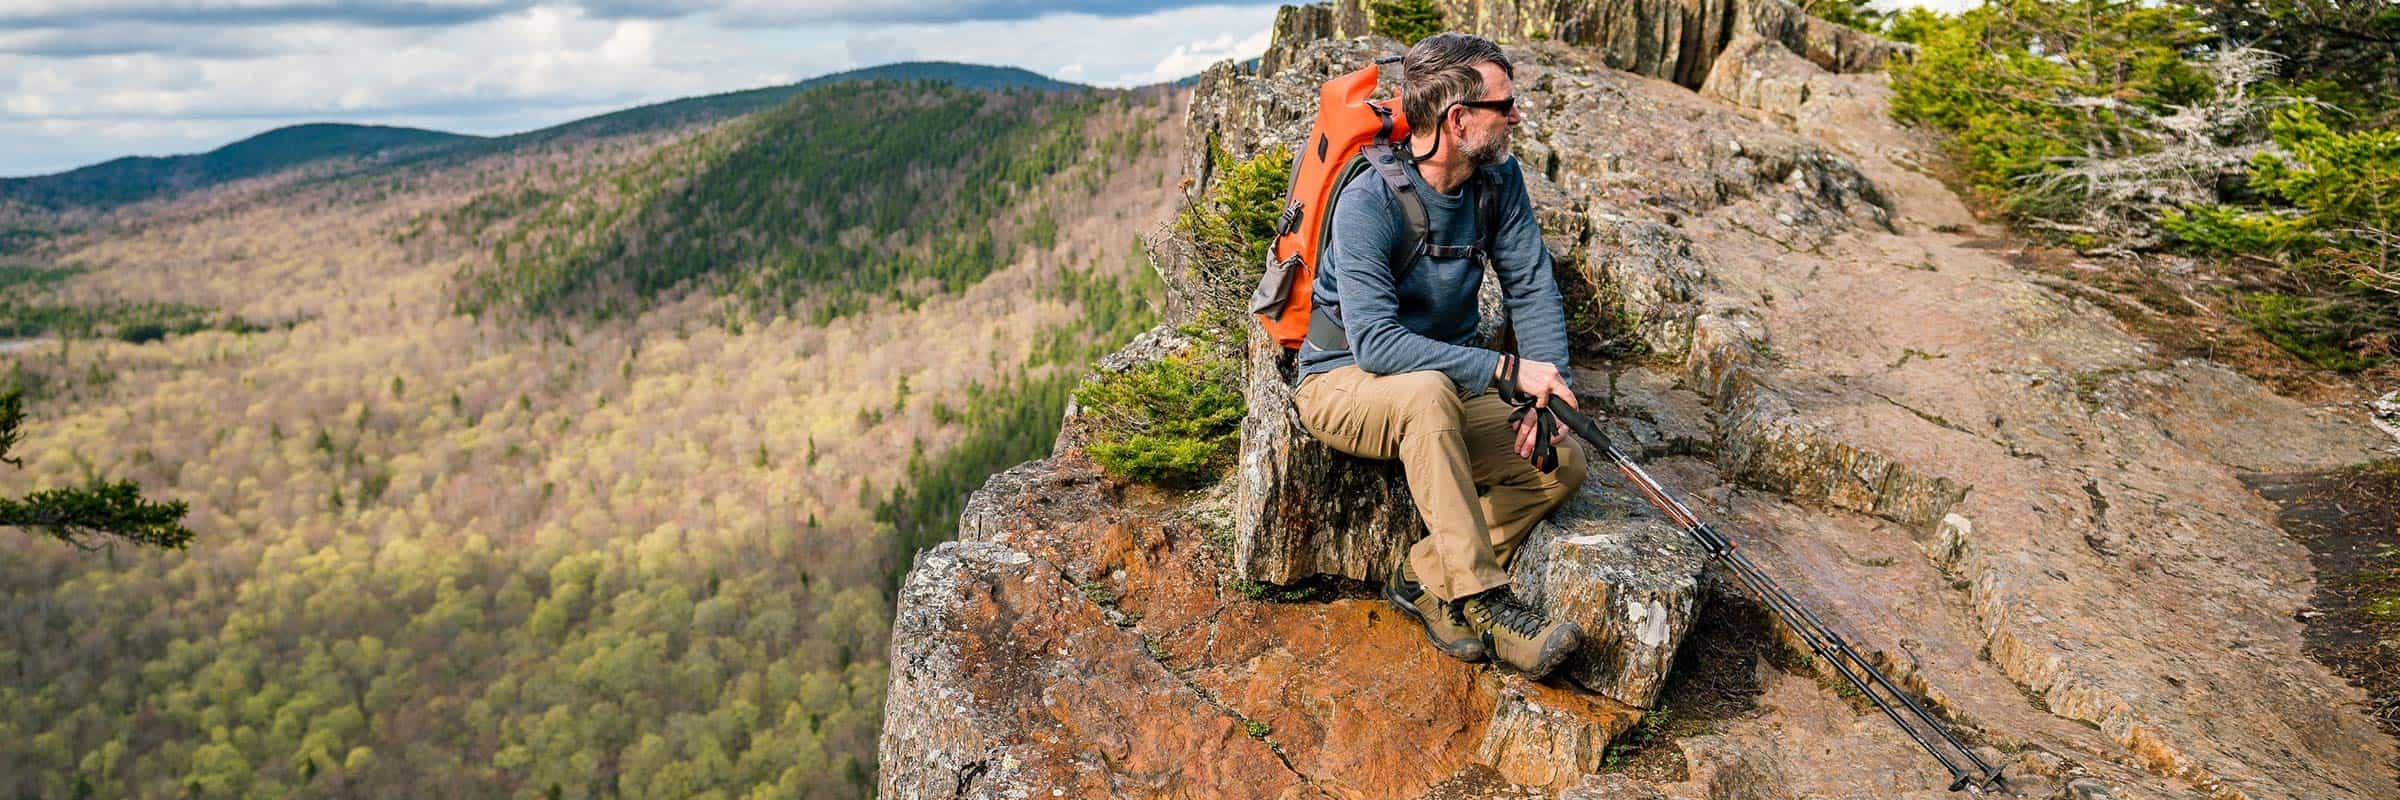 Keen Venture Mid Waterproof Boots: Tested in the Mountains